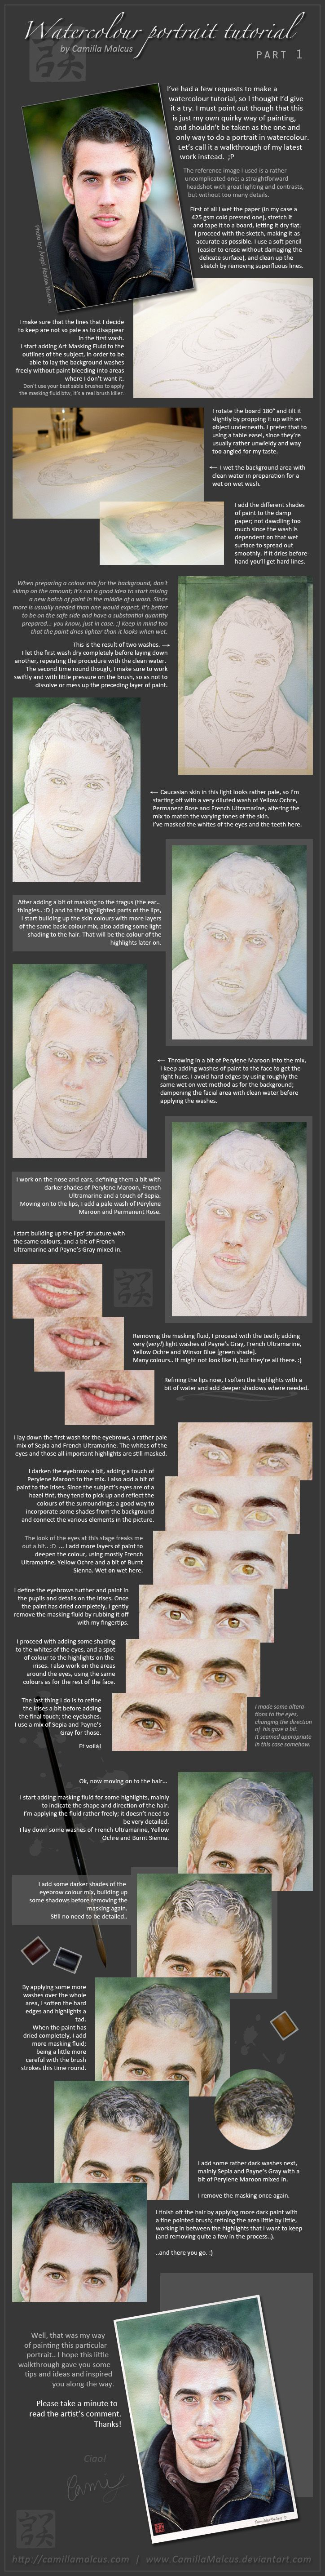 Watercolor Portrait Tutorial by *CamillaMalcus on deviantART